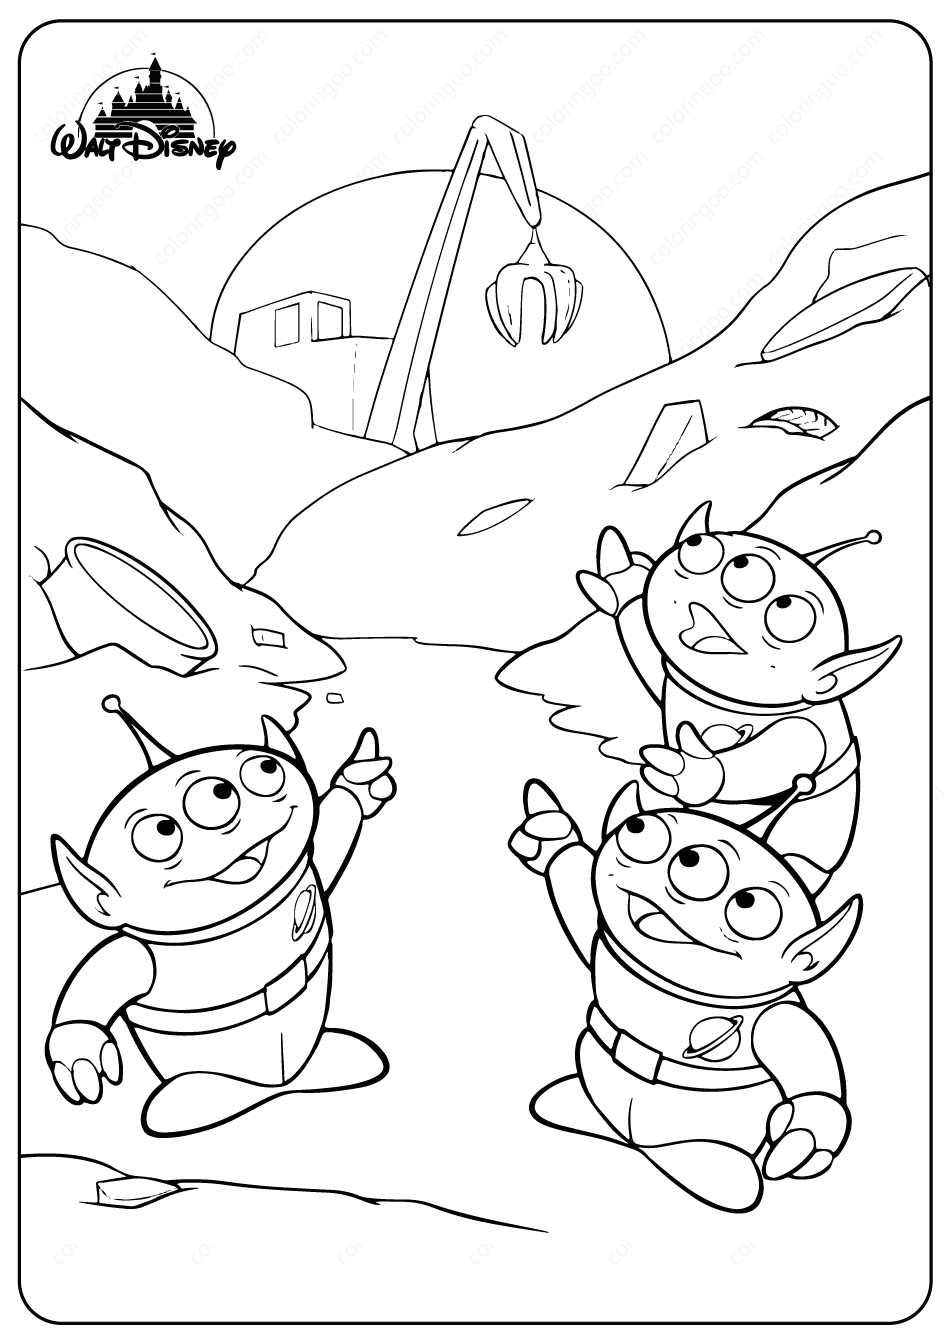 toy story alien coloring sheet alien coloring pages story toy alien sheet coloring